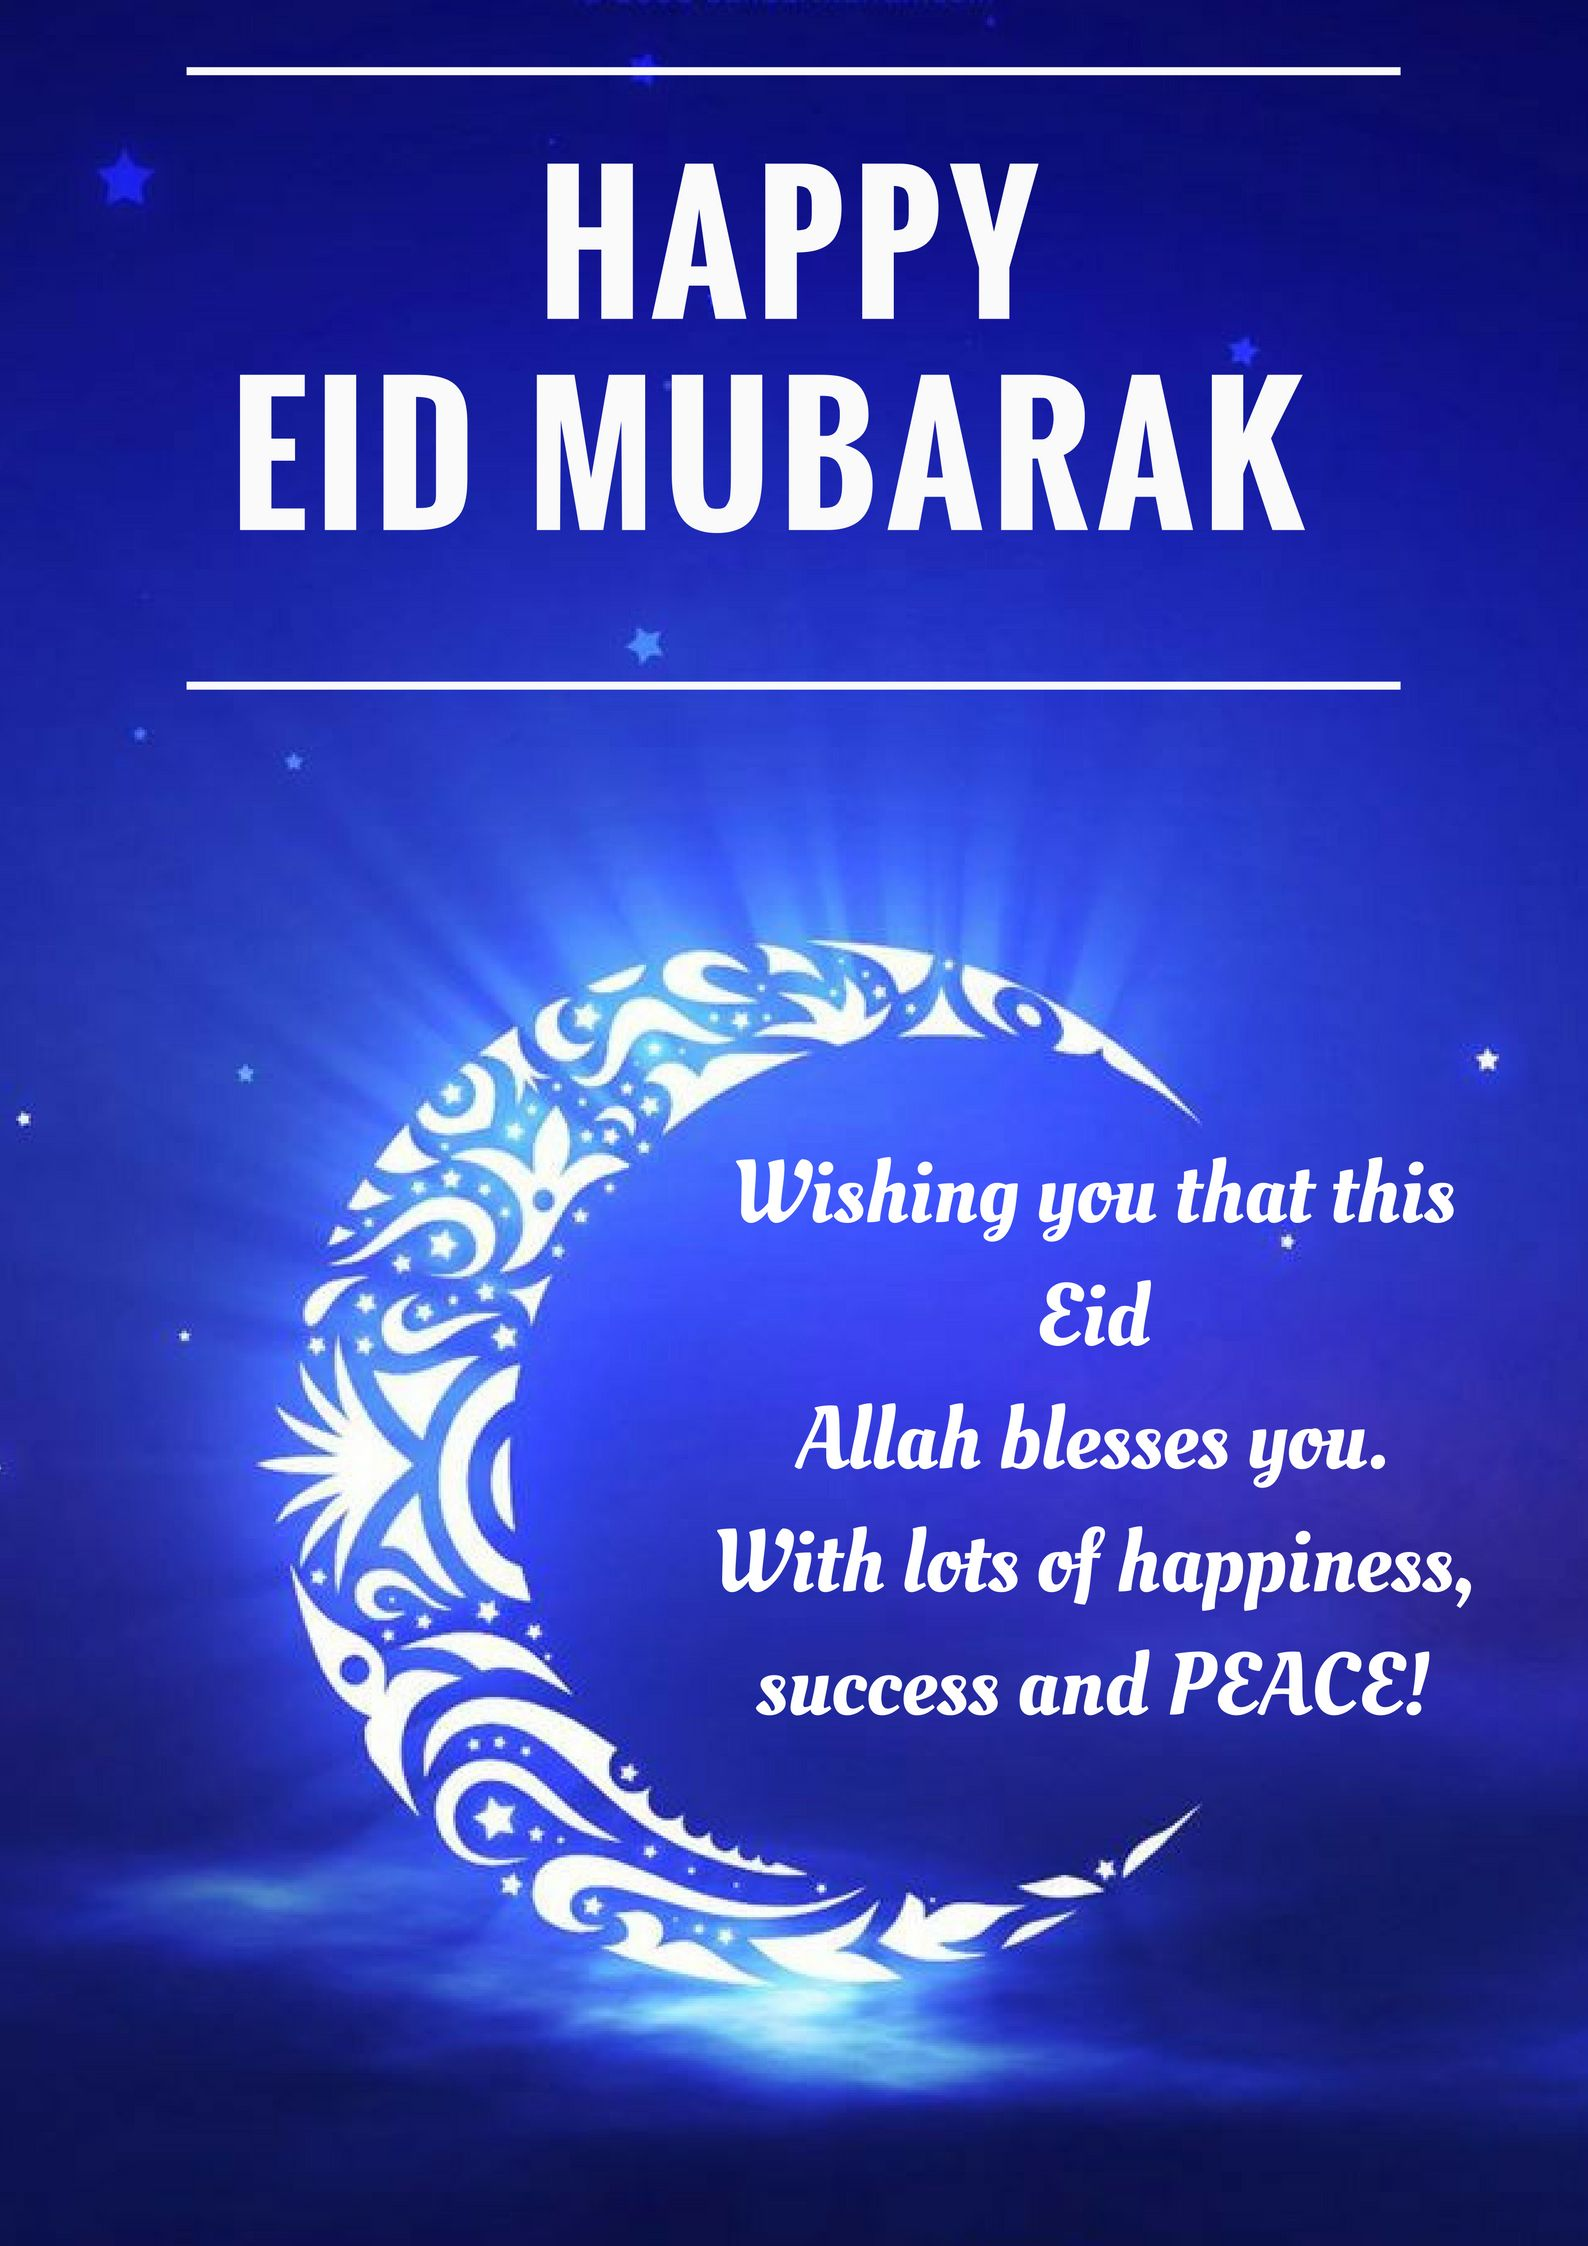 Digos Tech Celebrates Eid Mubarak To All Our Muslim Brothers And